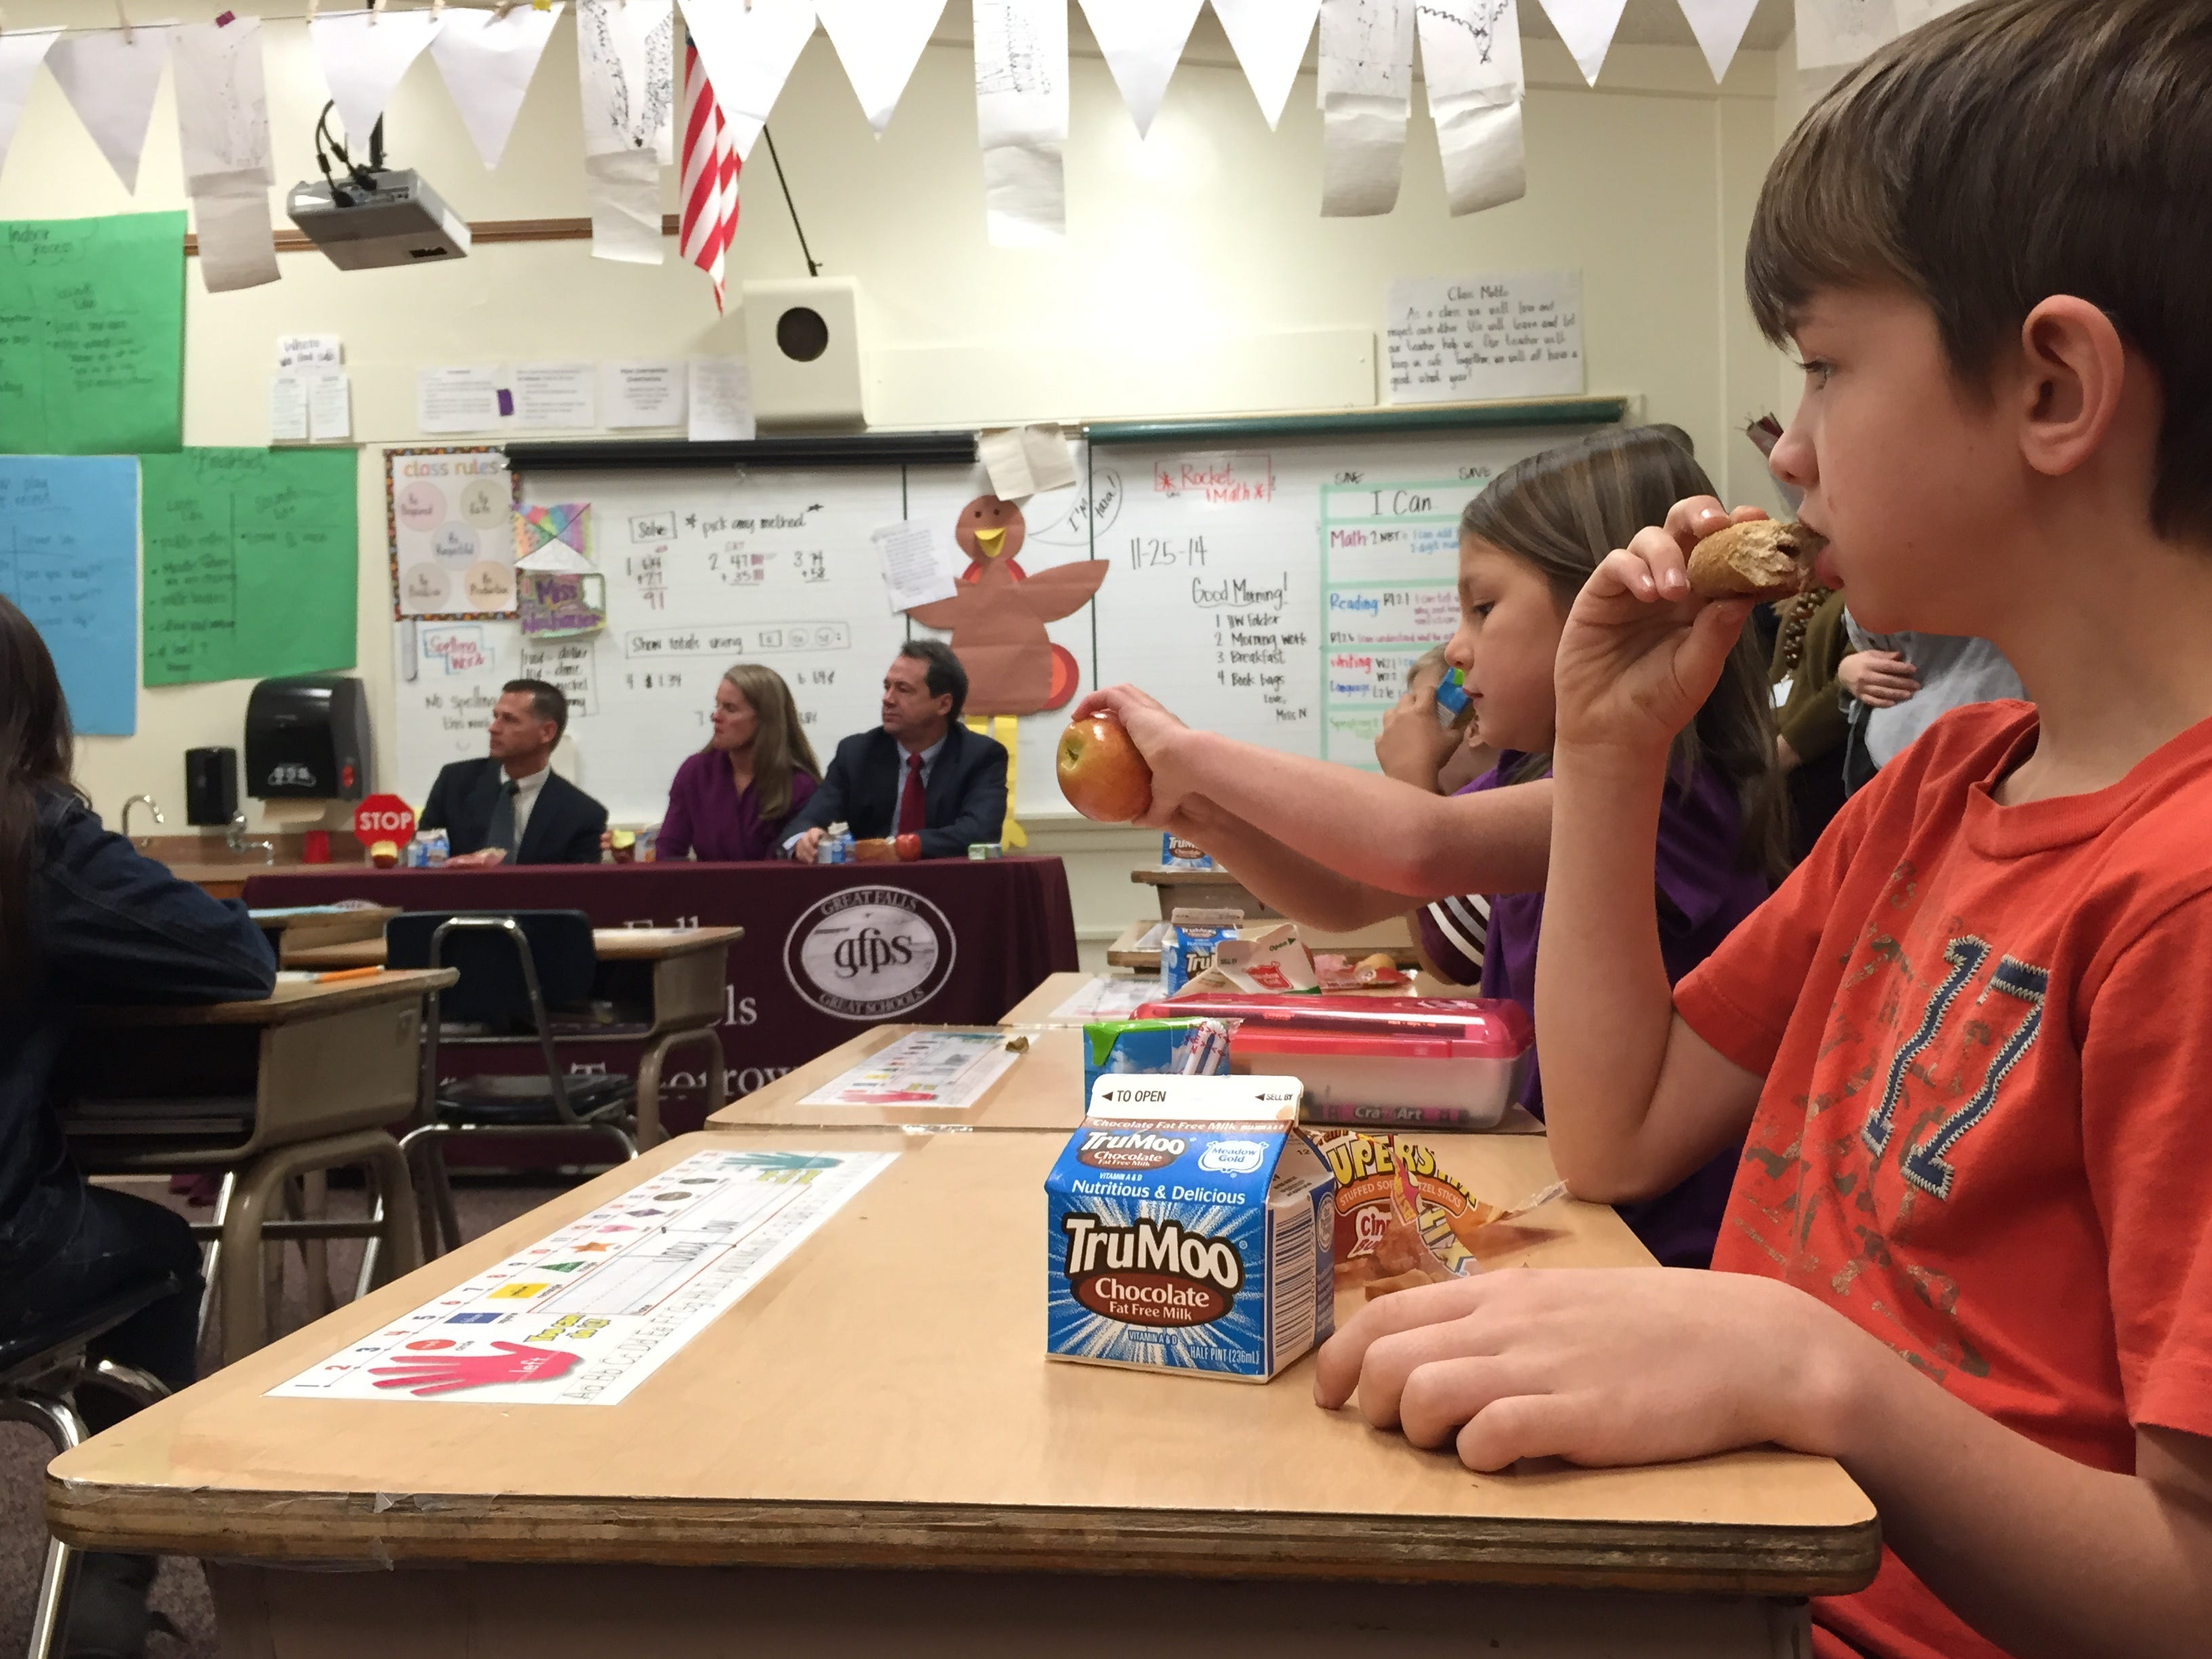 TRIBUNE PHOTO/KRISTEN CATES Jacy Tow, a second-grader at West Elementary School, enjoys breakfast with Gov. Steve Bullock and first lady Lisa Bullock in his classroom Tuesday morning. Jacy Tow, a second-grader at West Elementary School, enjoys breakfast with Gov. Steve Bullock and First Lady Lisa Bullock in his classroom on Tuesday morning. TRIBUNE PHOTO/KRISTEN CATES.